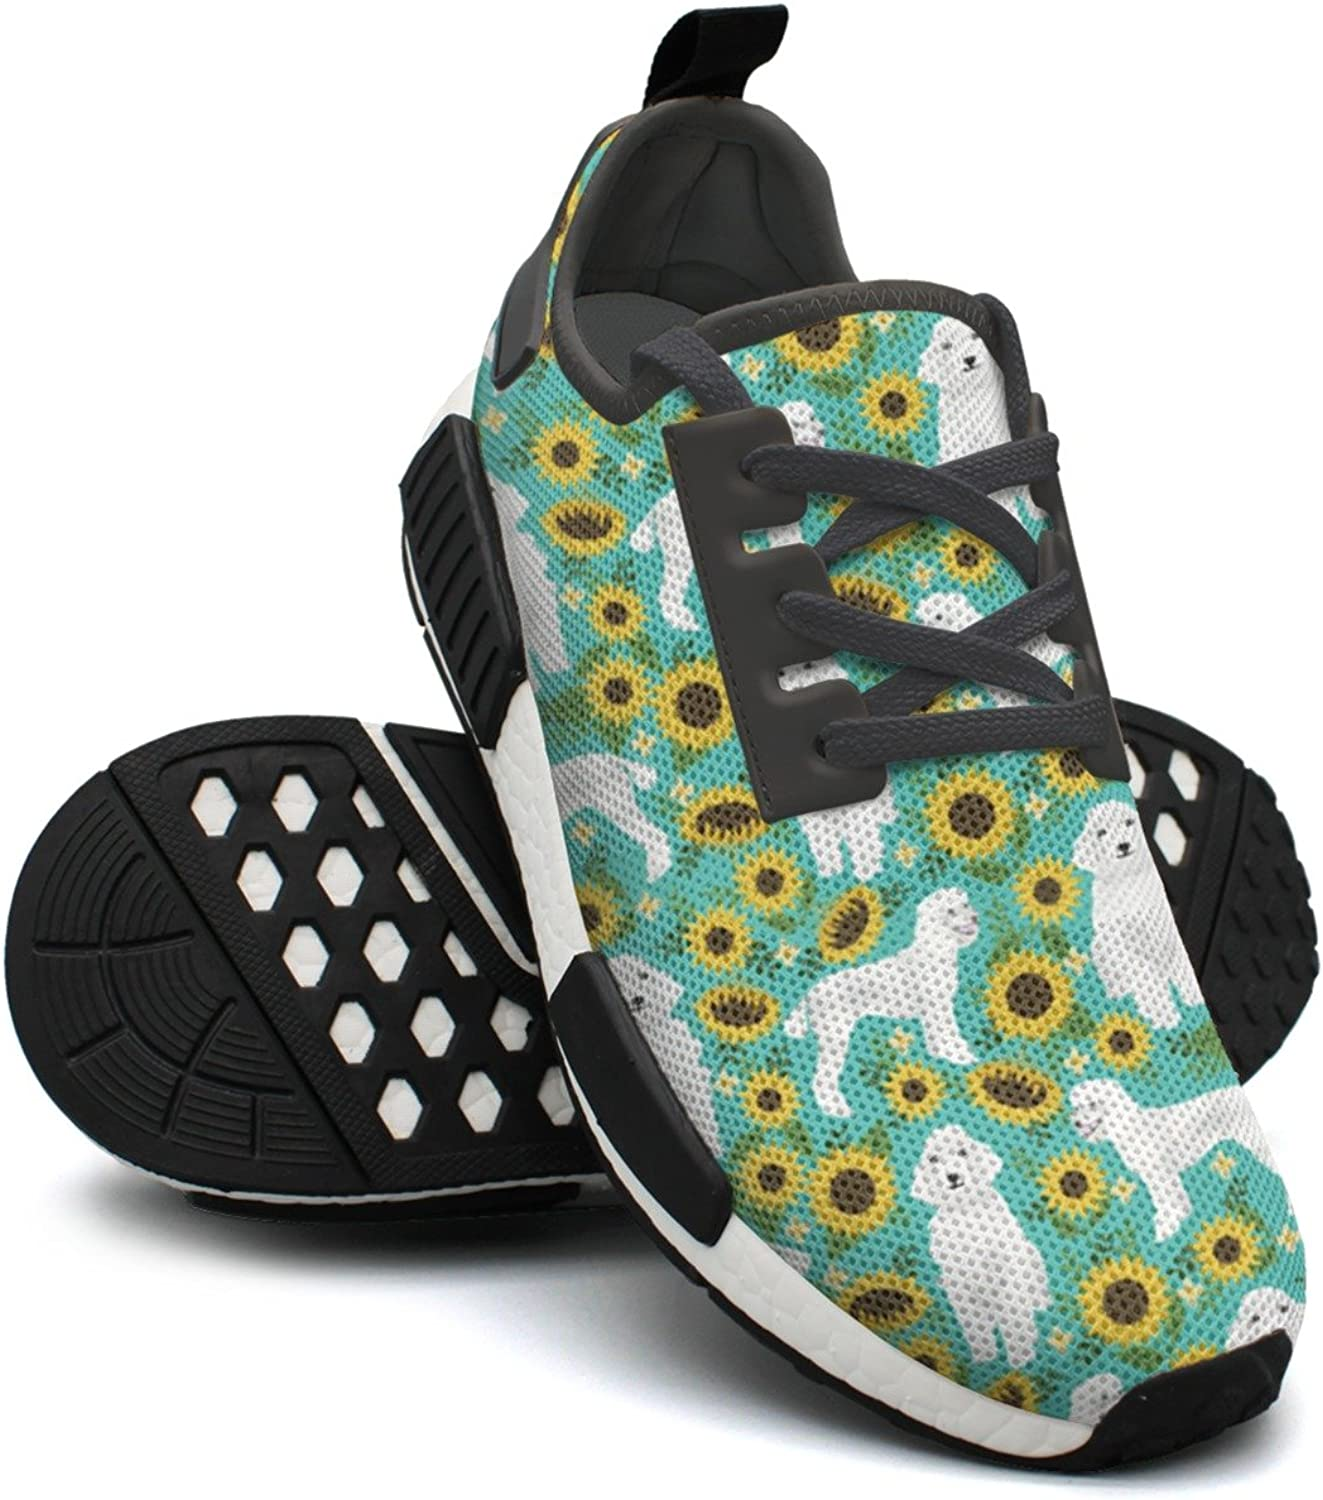 White Poodle Dog and Sunflowers Pattern Women's Designer Lightweight Sneaker Gym Outdoor Boat shoes